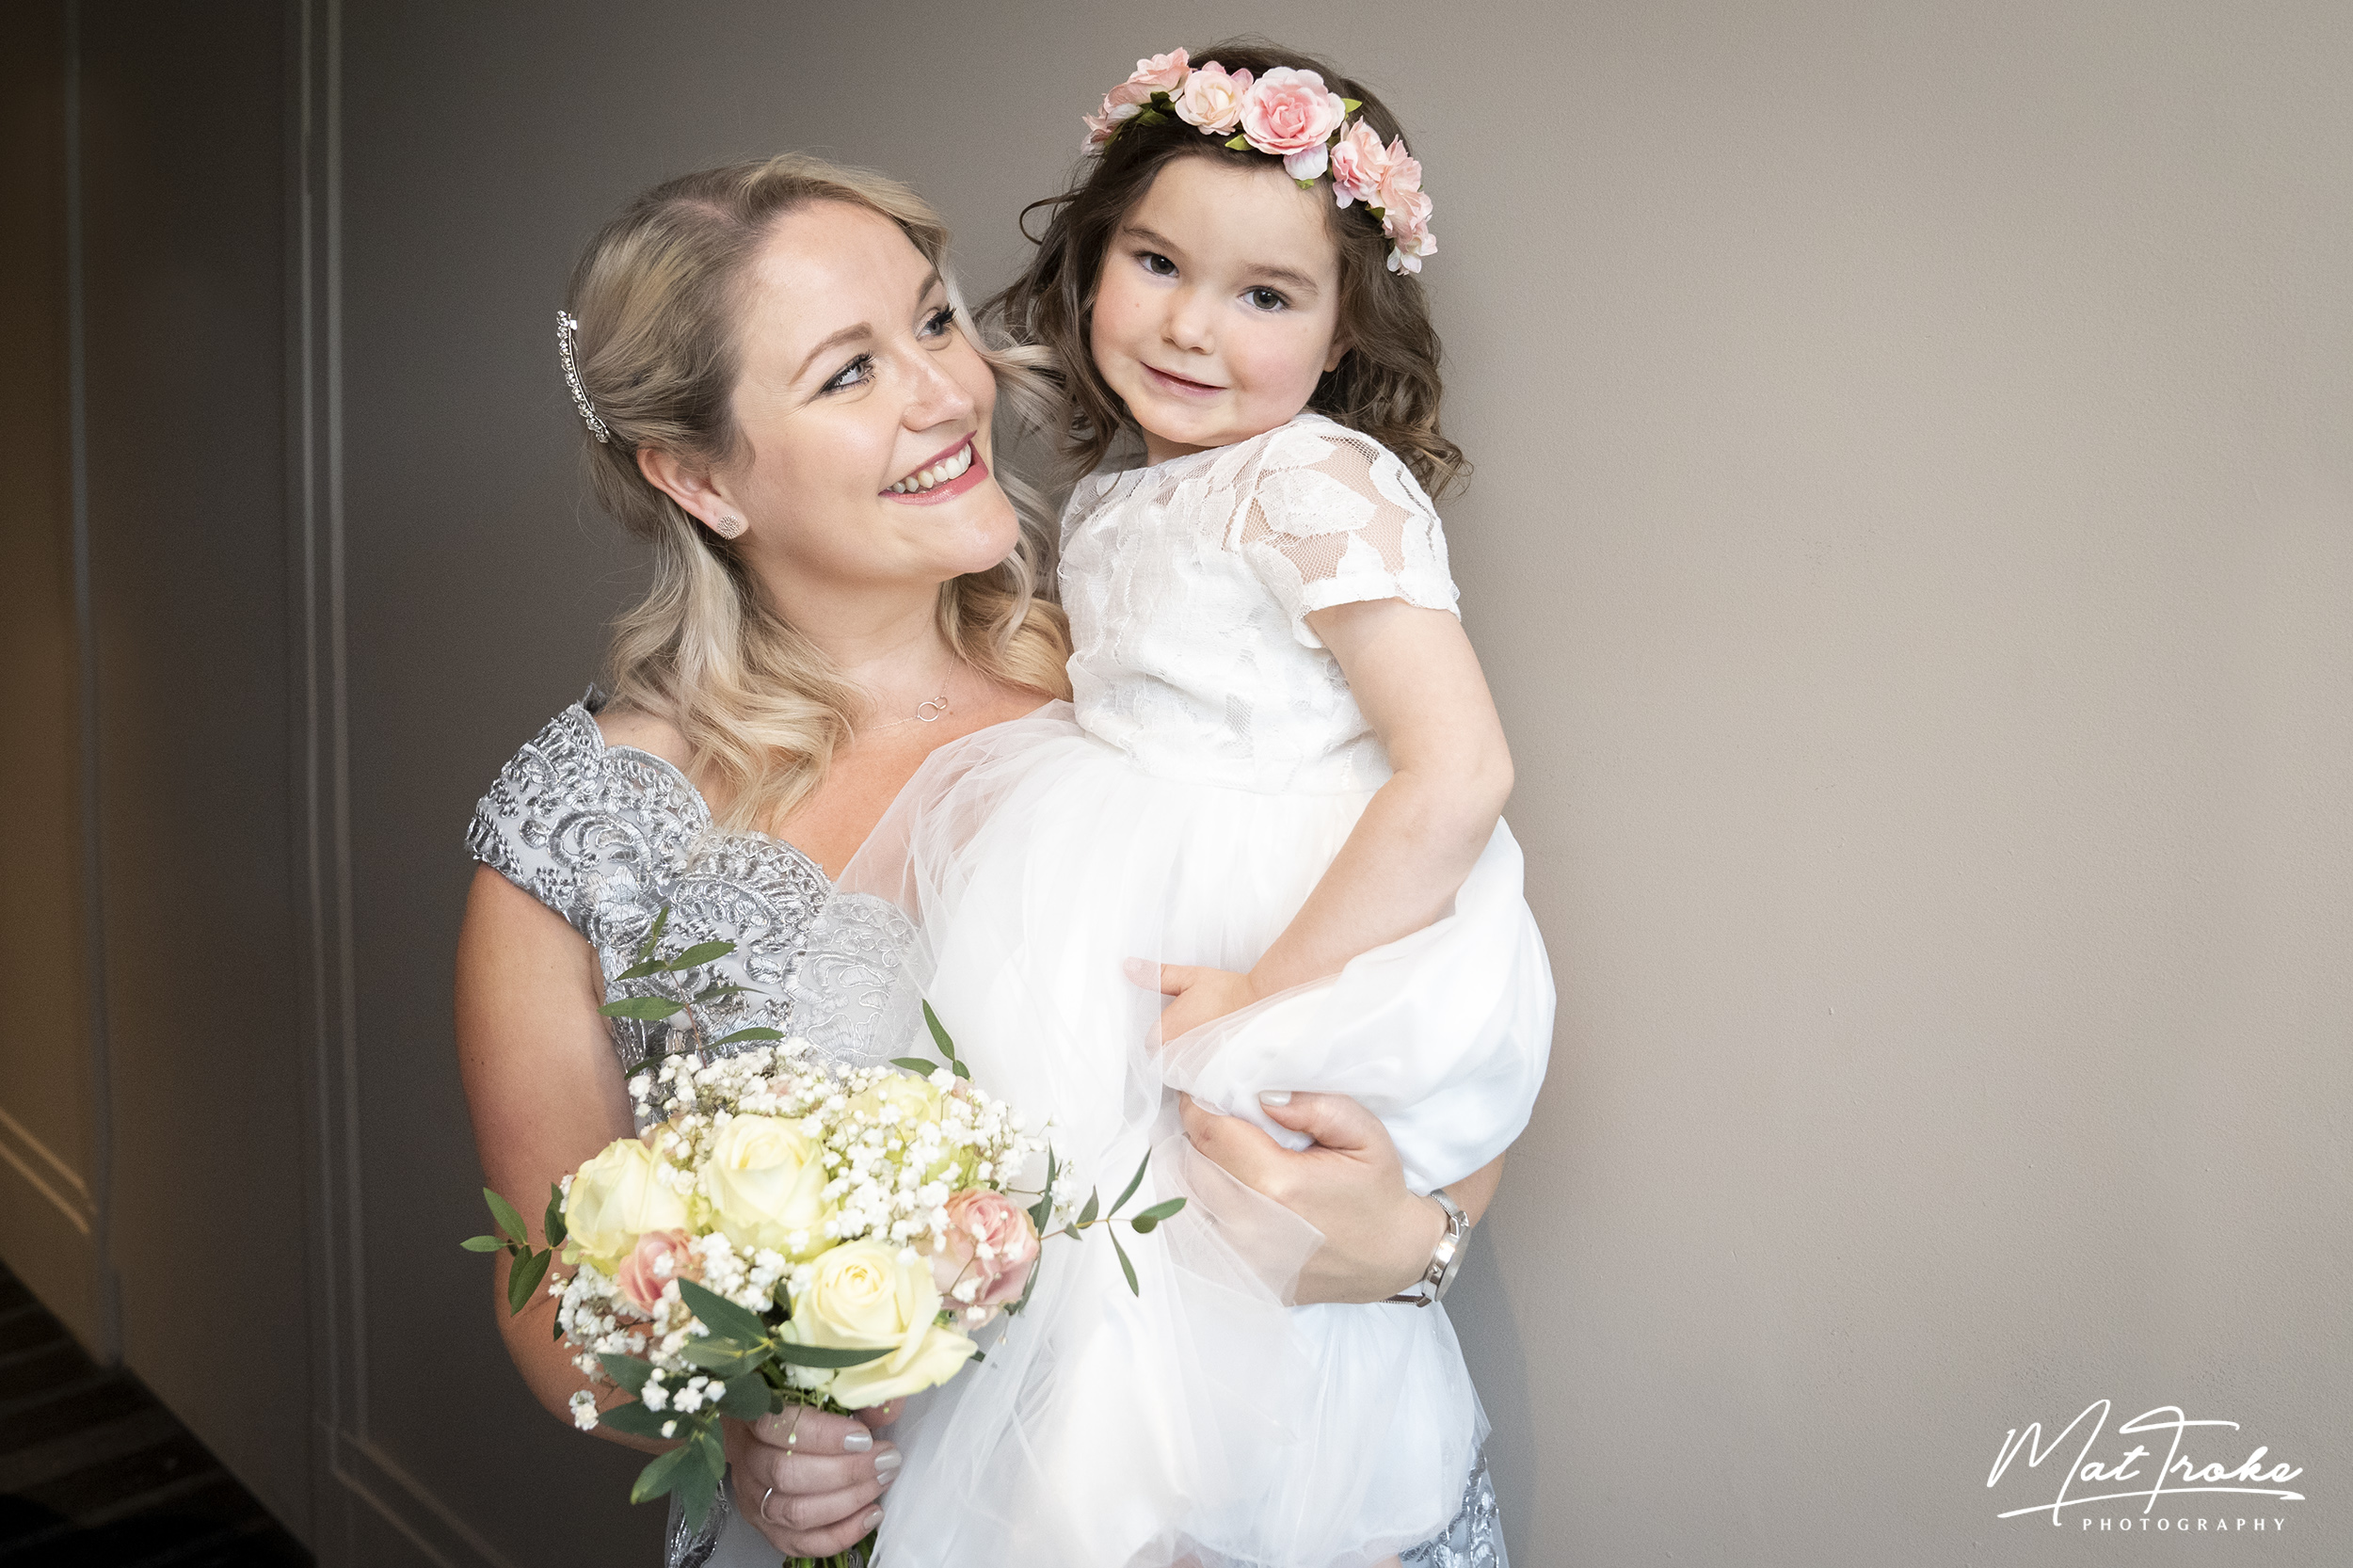 Mour_hotel_flowergirl_flower_girl_wedding_photography_mour_hotel_dekota_photographer_mansfield_dekota.jpg